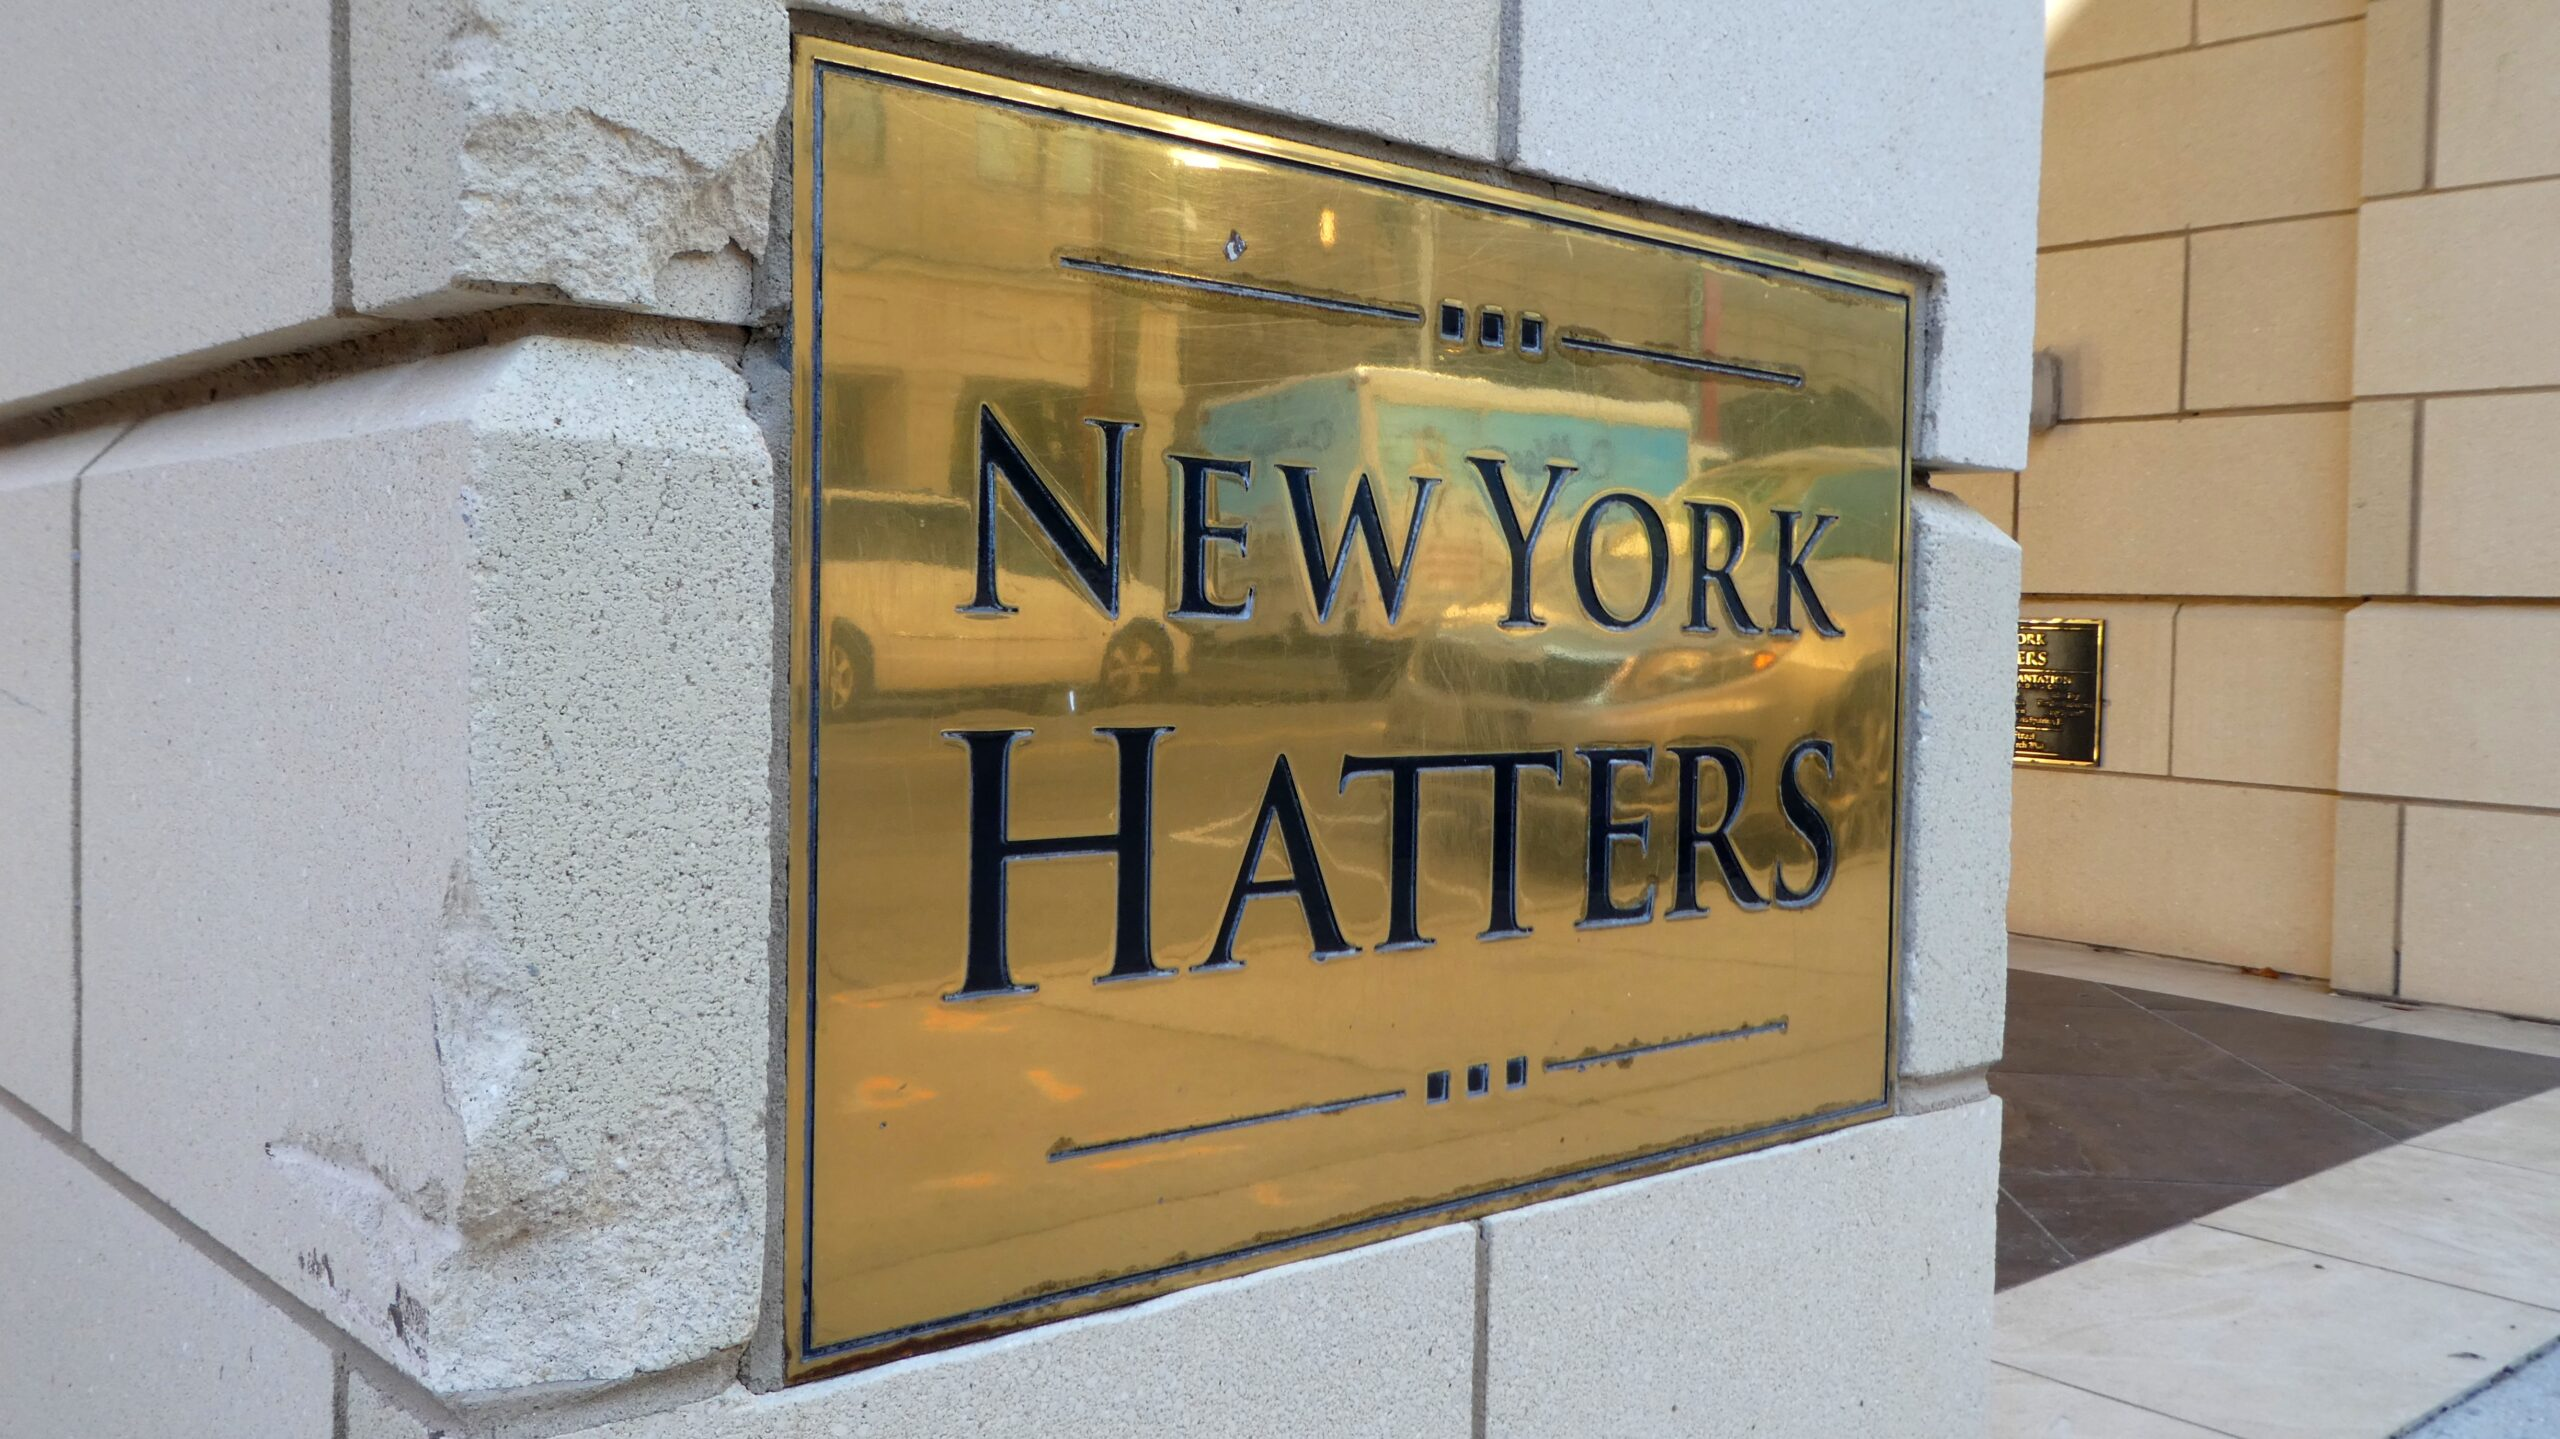 Blass Nameplate attached to the front of the building with the Name New York Hatters